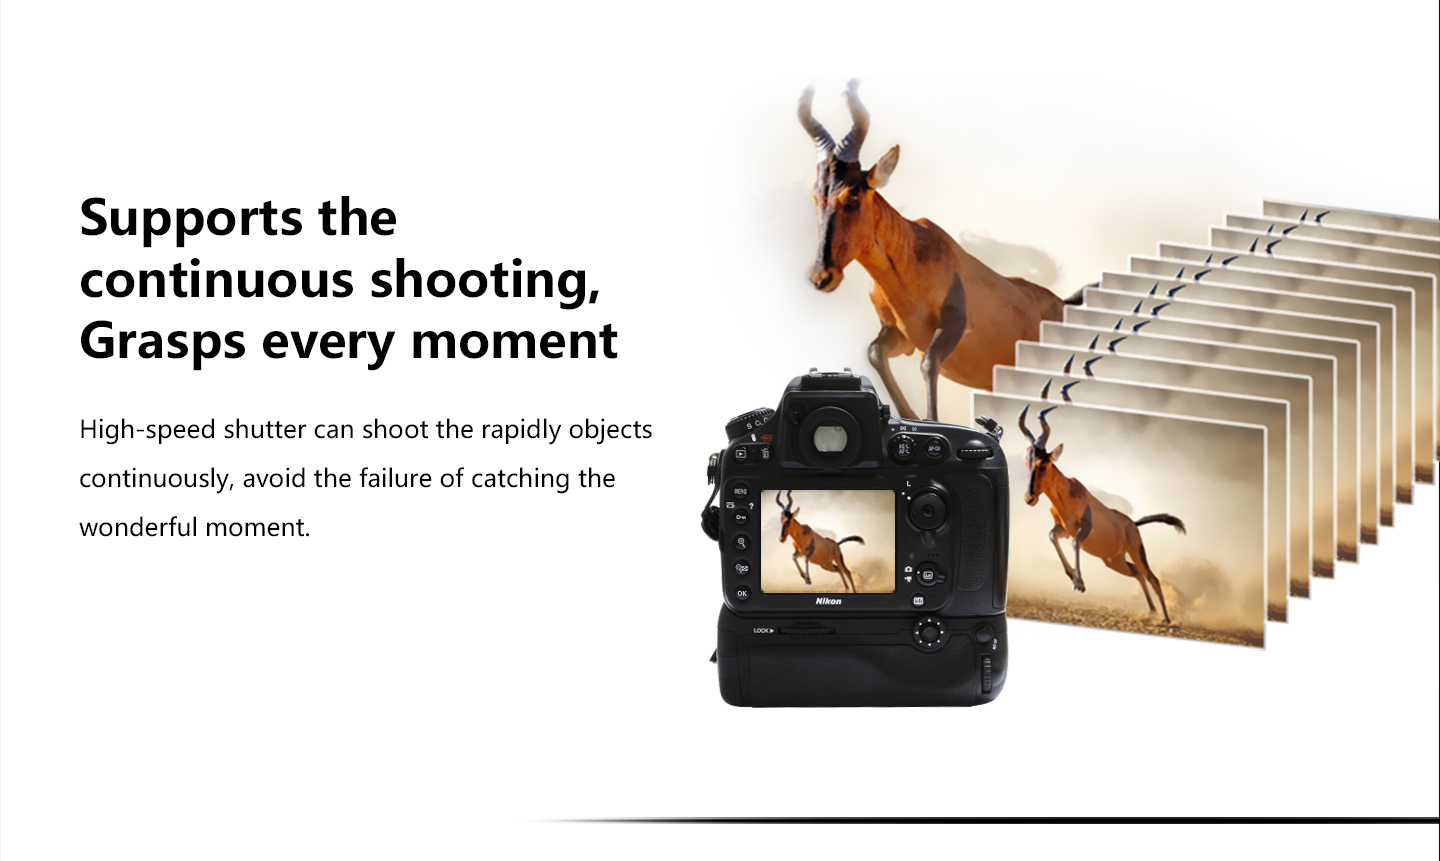 Supports the continuous shooting, Grasps every moment